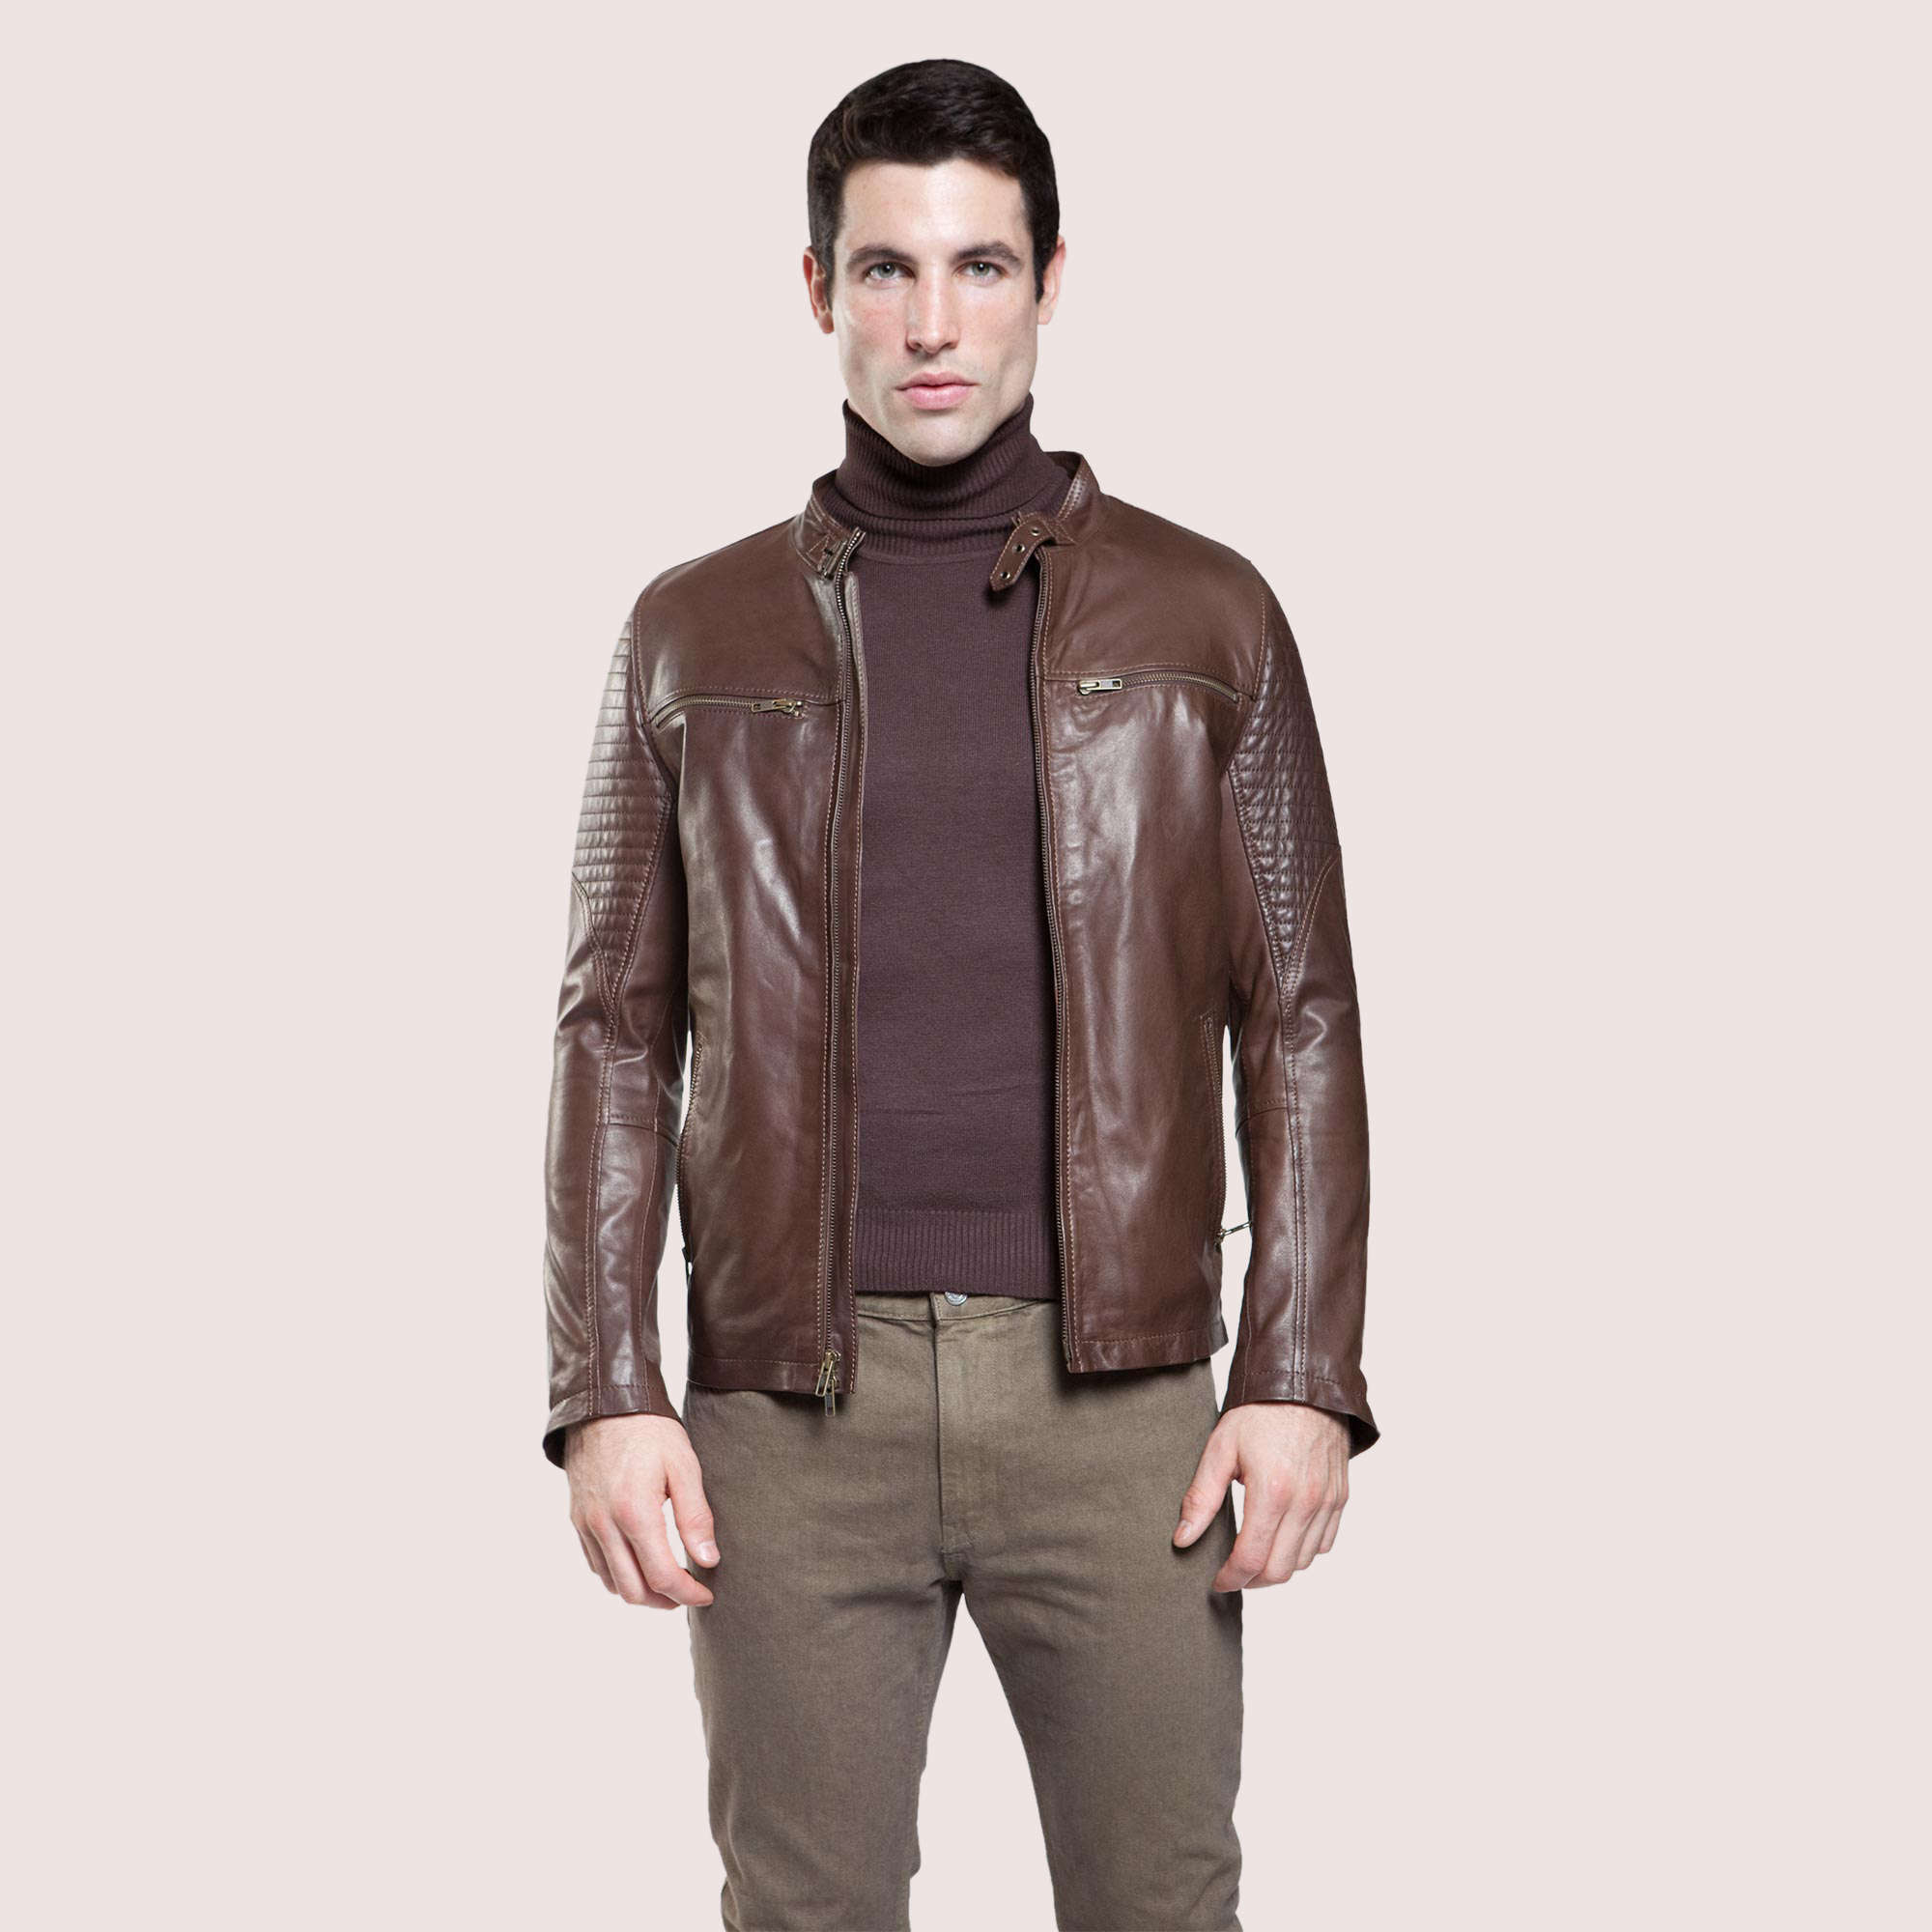 Malibu Leather Jacket